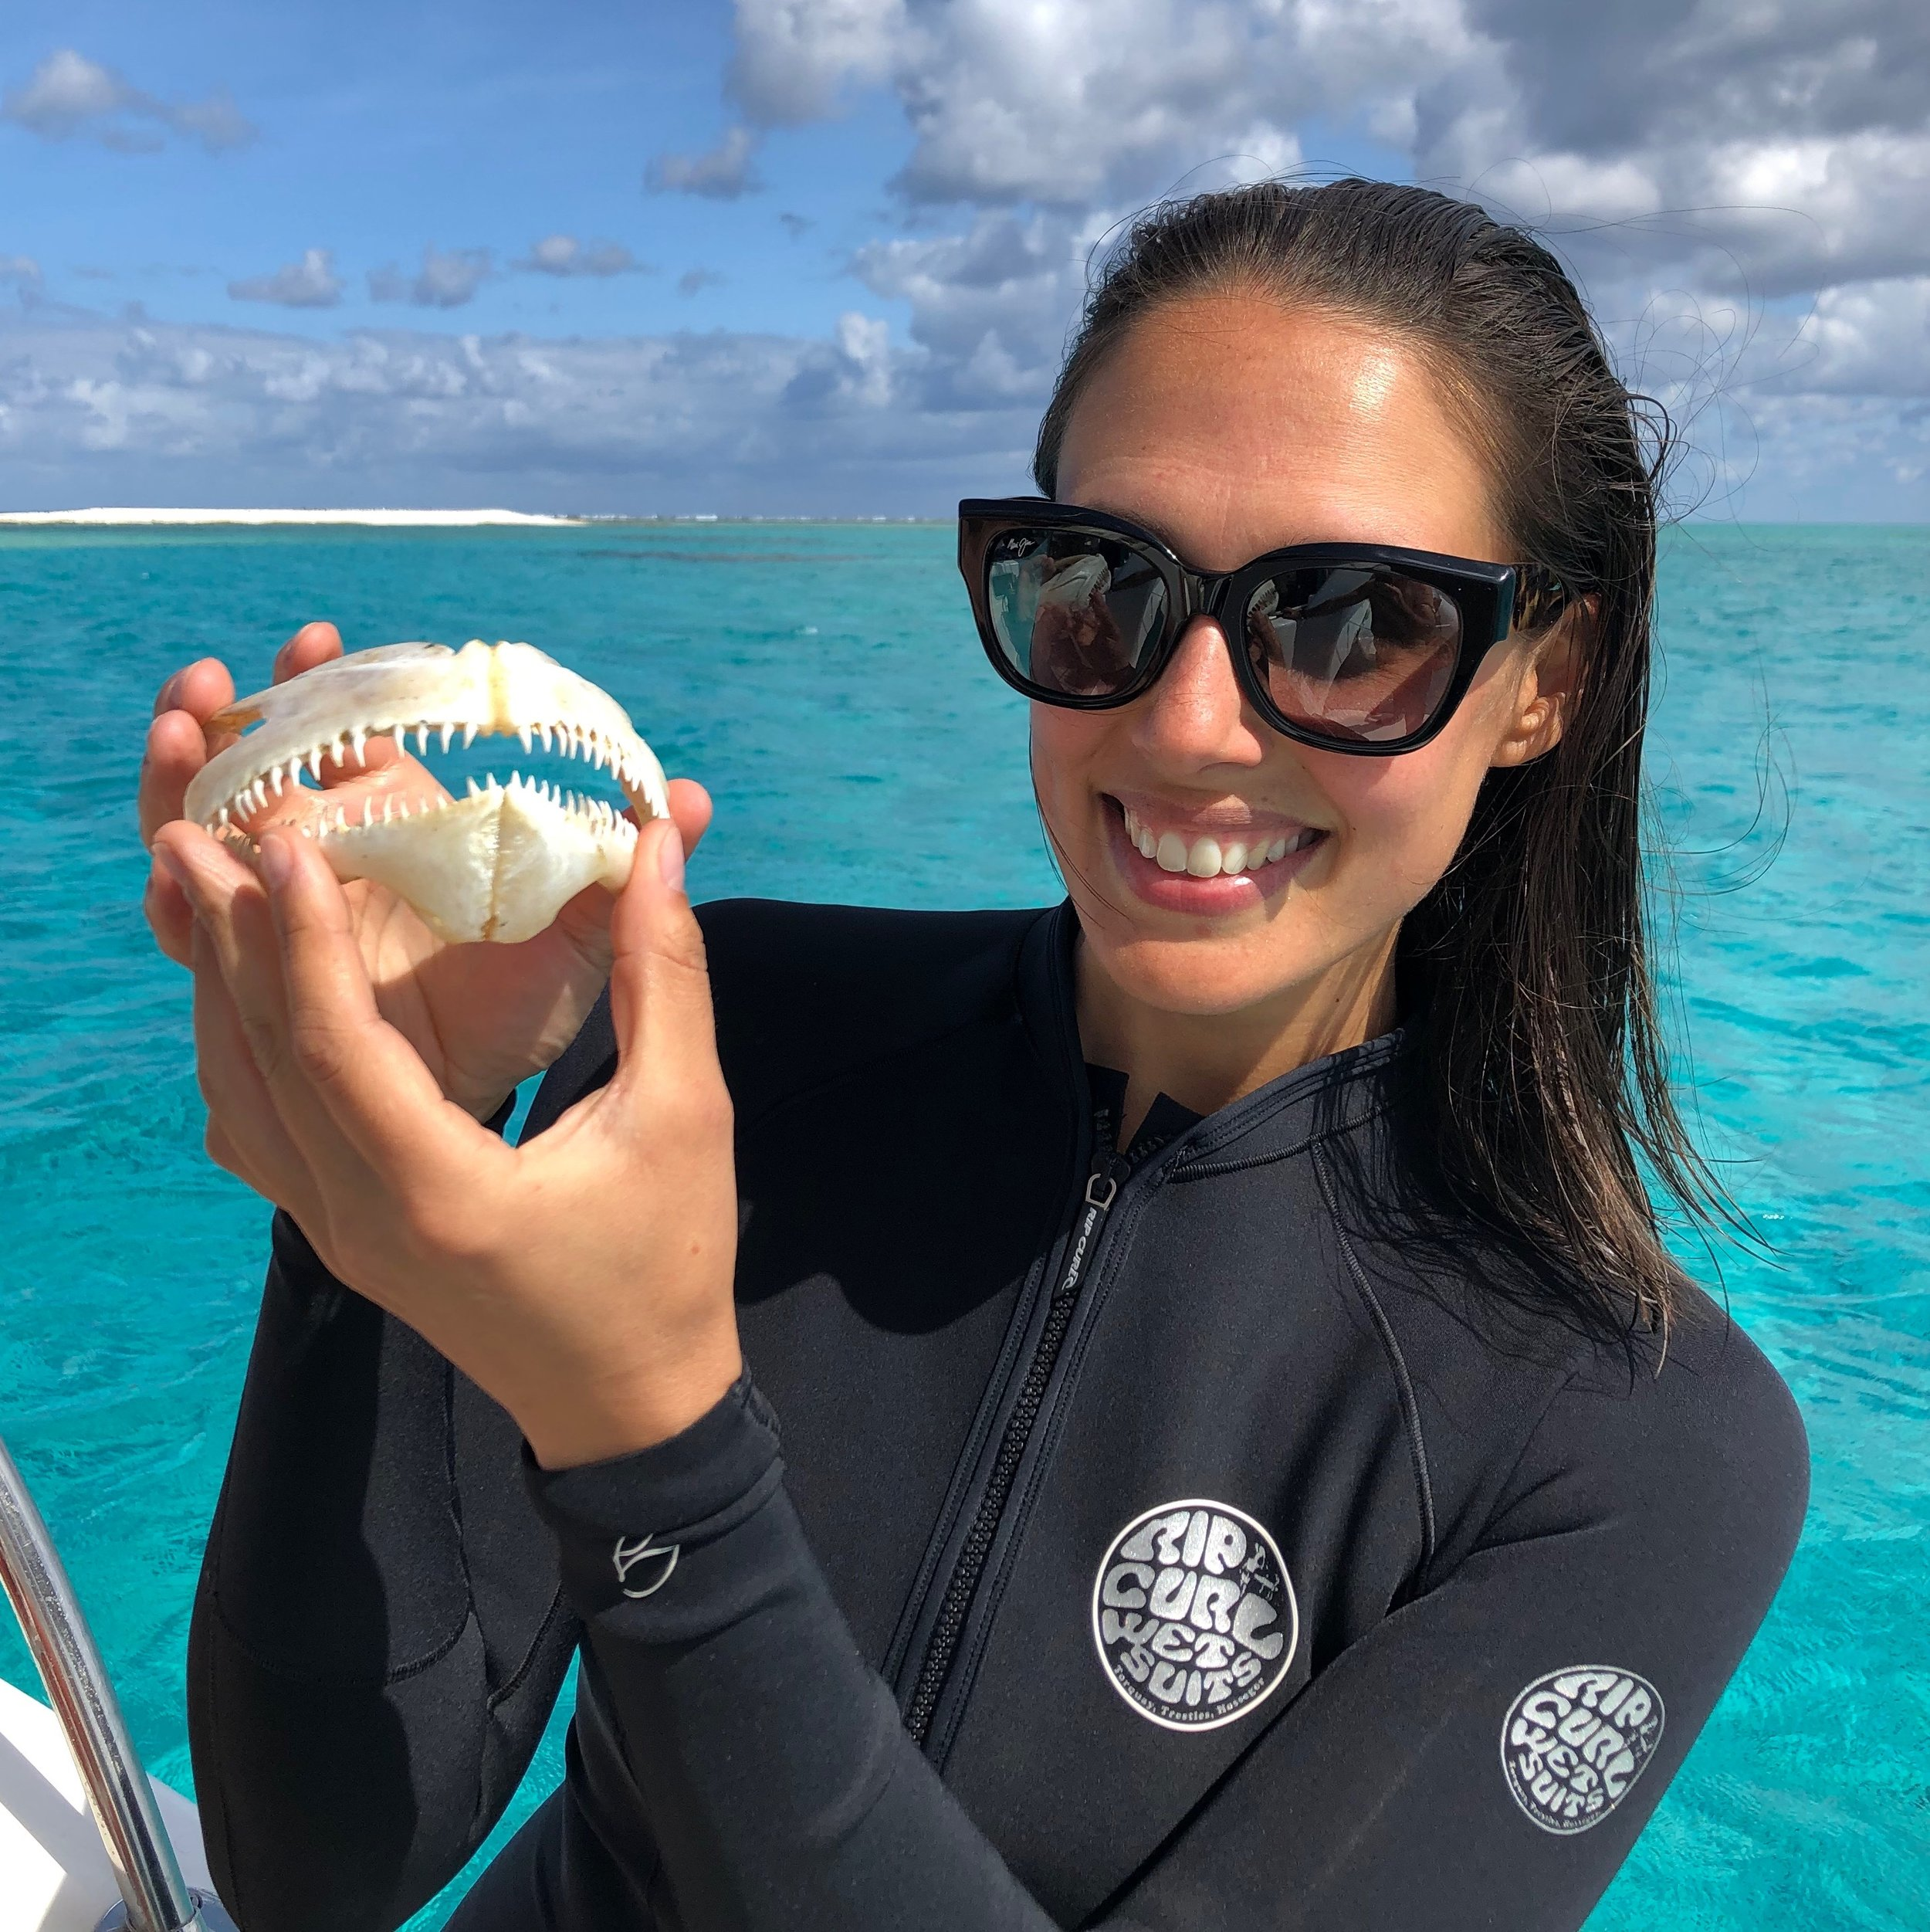 Marine biologist in the Coral Sea. - Vanessa pictured here with a dogtooth tuna jaw.